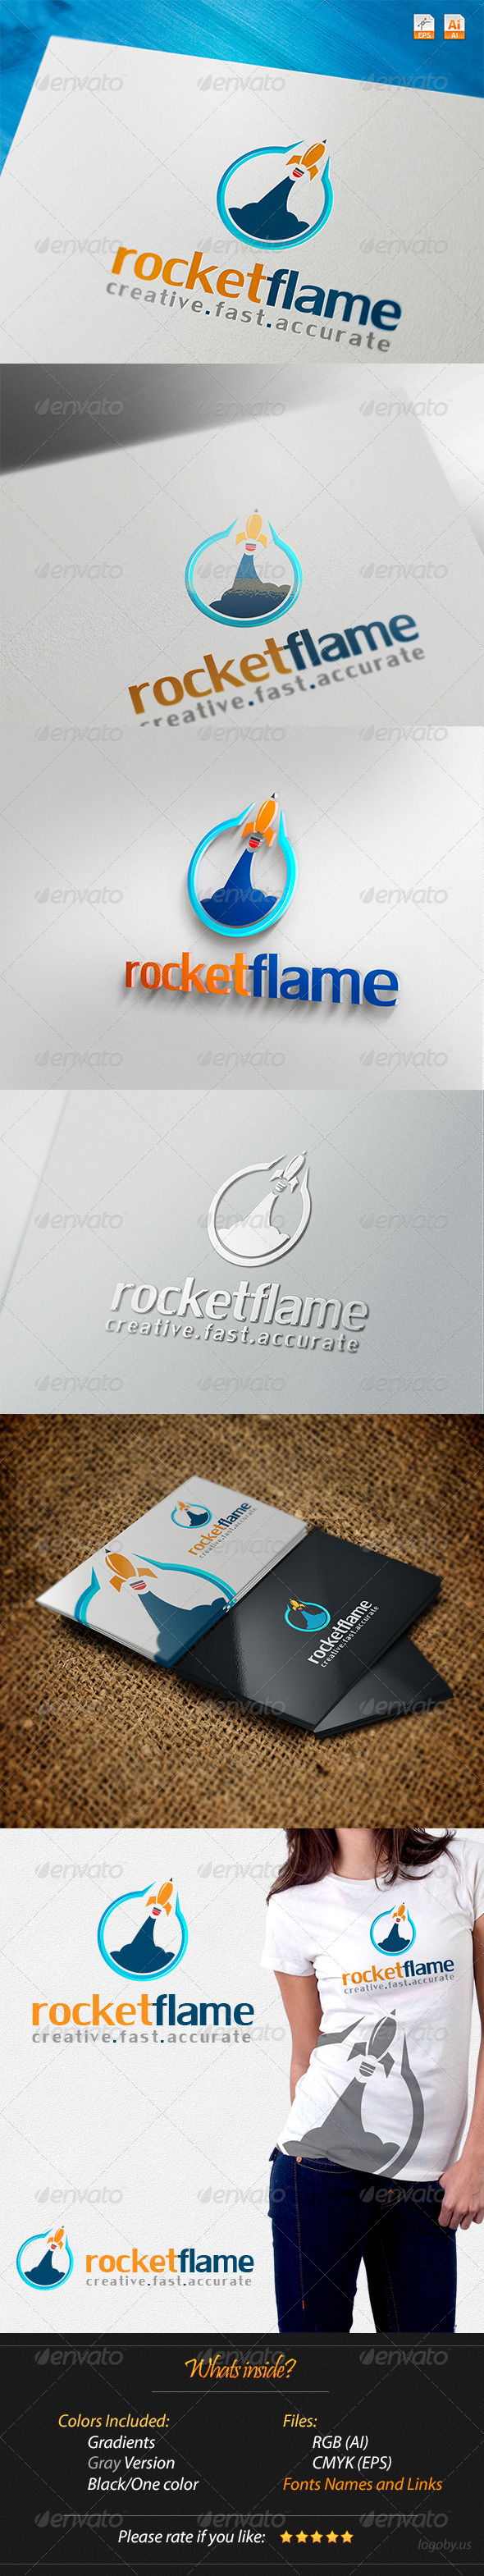 Rocket Flame Creative Fast Accurate Logo - Objects Logo Templates